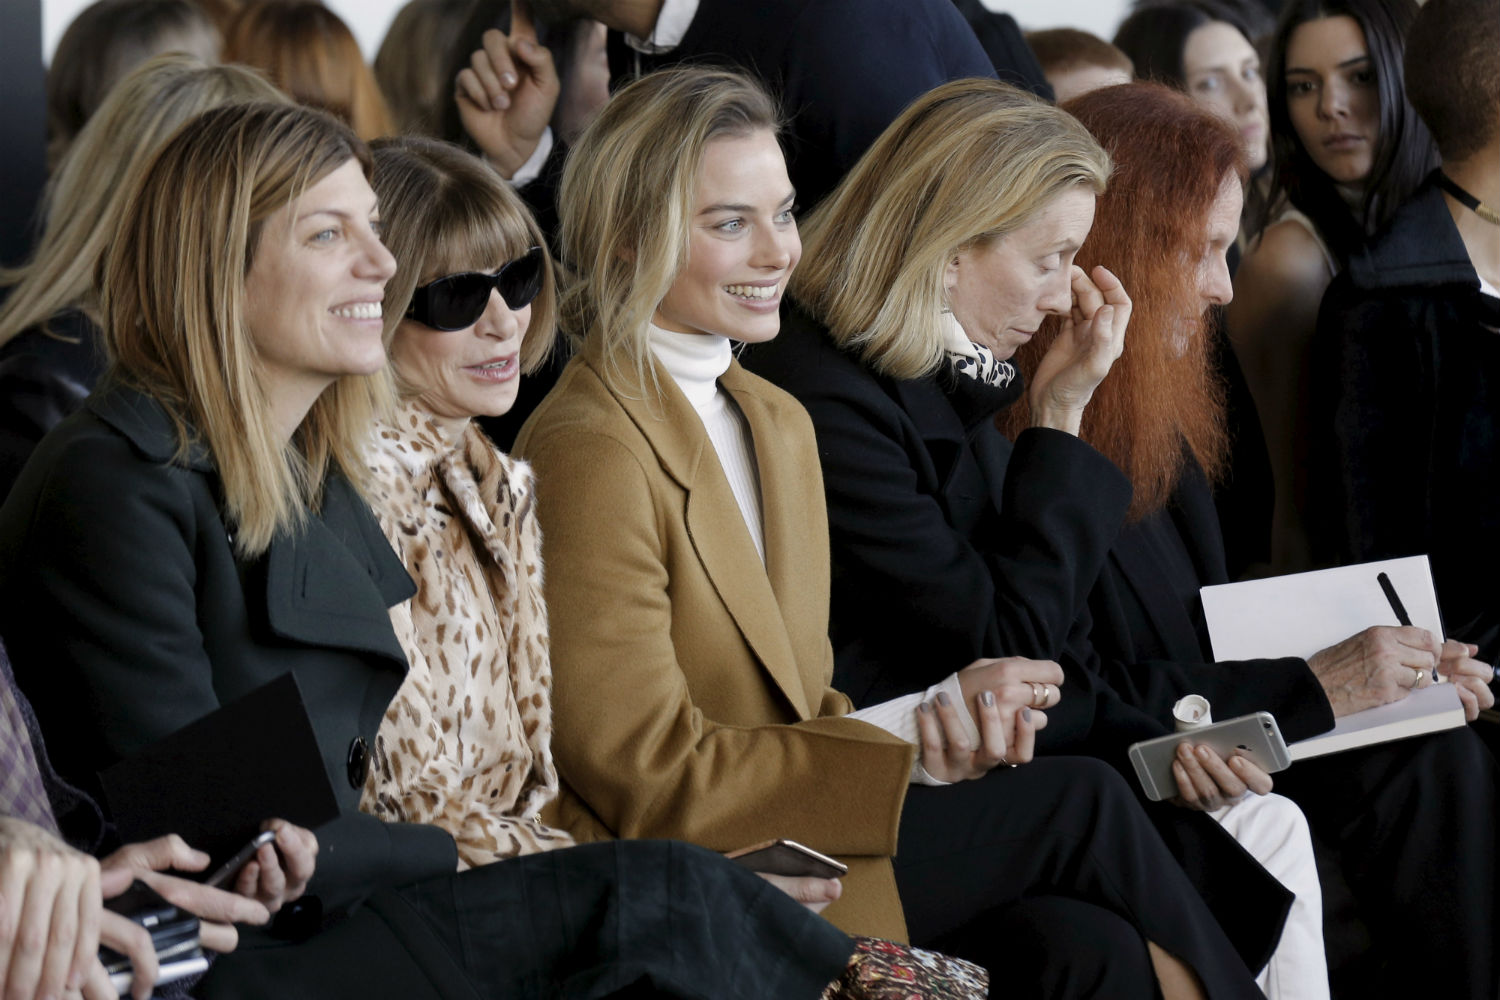 Vogue's Fashion Market/Accessories Director Virginia Smith, editor-in-chief Anna Wintour and actress Margot Robbie (L to R) attend the Calvin Klein Fall/Winter 2016 collection during New York Fashion Week in New York, February 18, 2016. REUTERS/Brendan McDermid